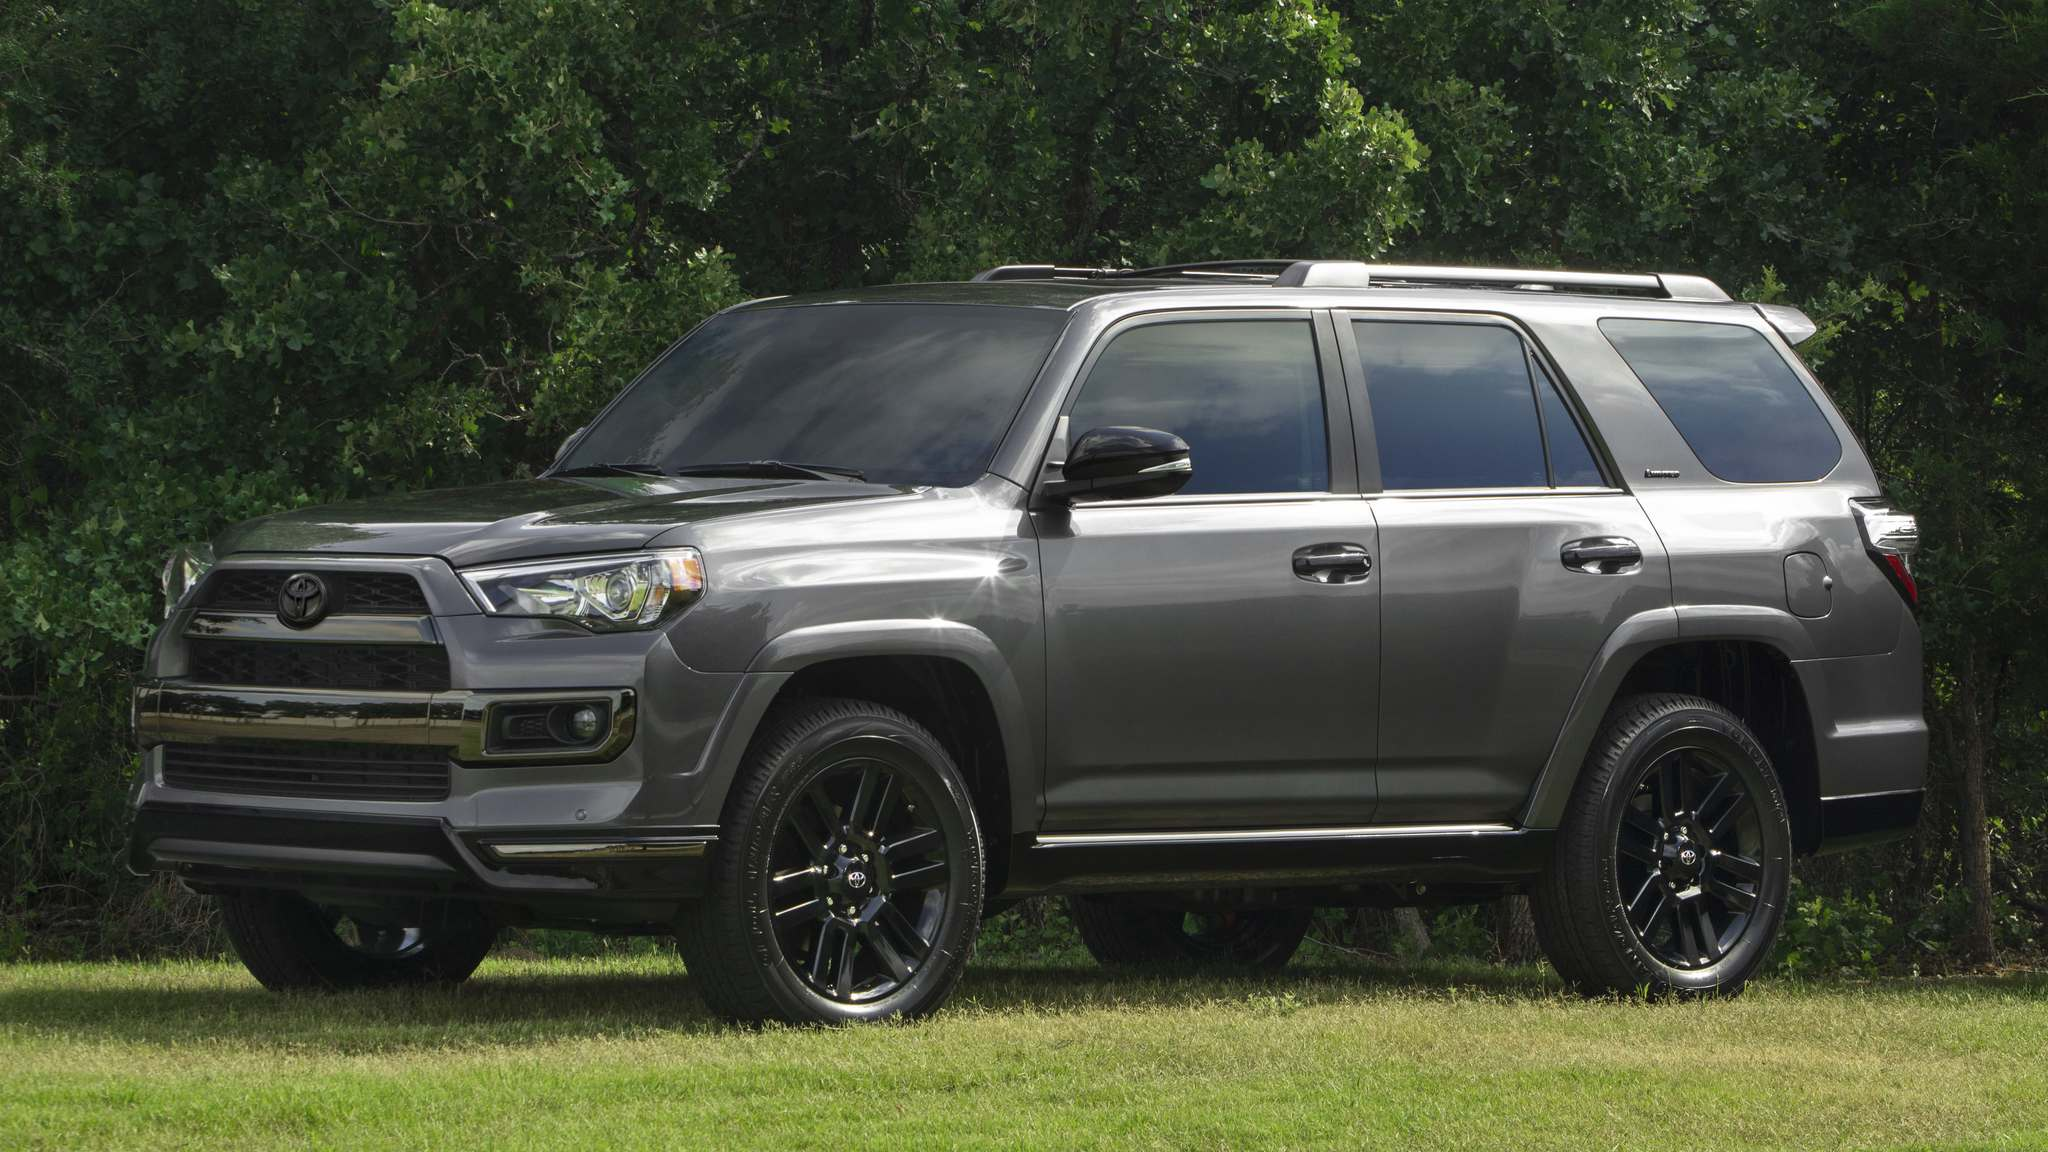 ToyotaWith the 4Runner, Toyota has designed and continually upgraded an extremely reliable SUV that offers a terrific blend of style, utility and capability.